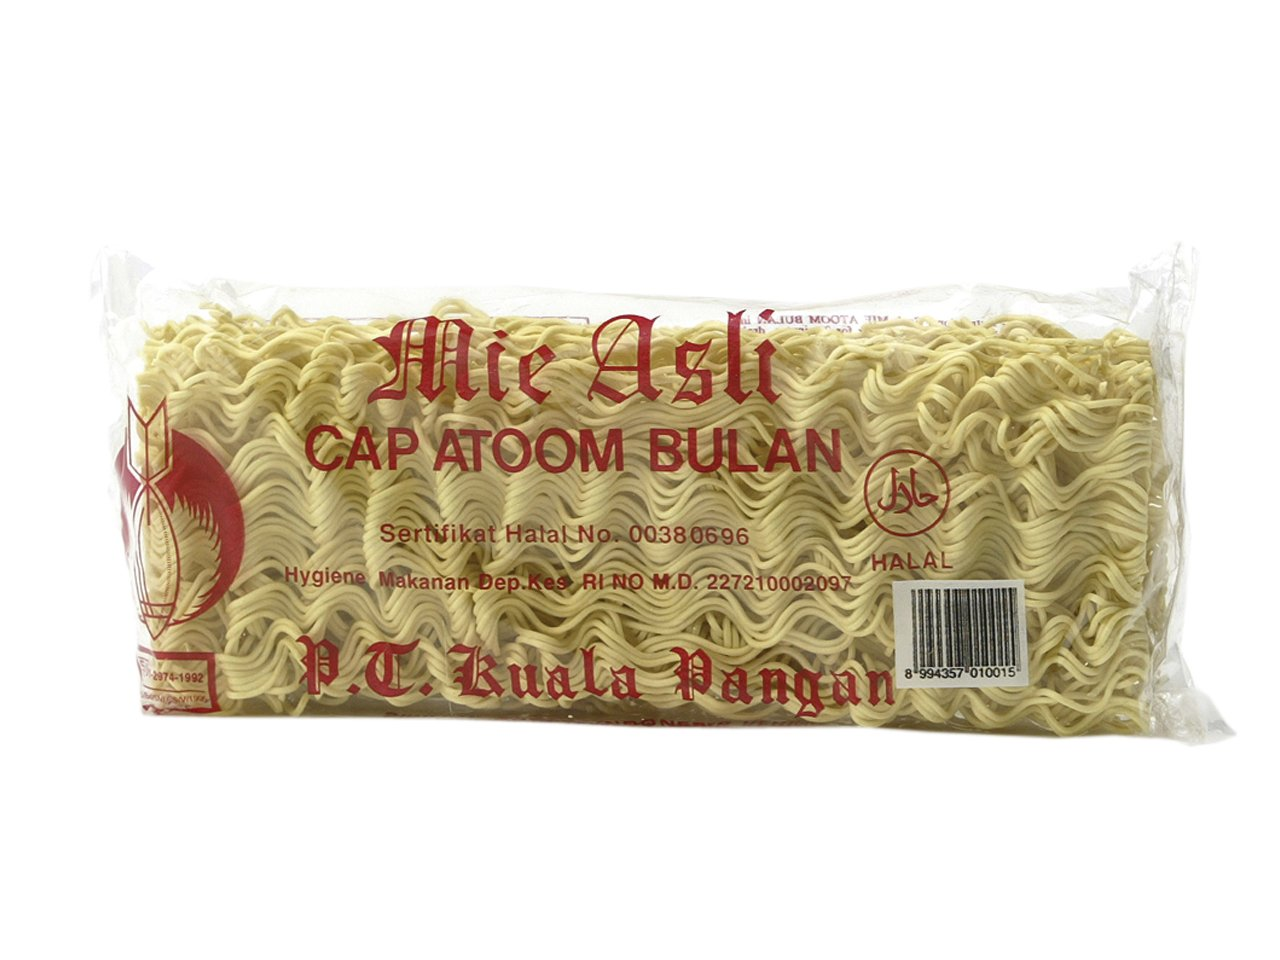 Atoom Bulan Mie Asli Dried Egg Noodles 200 G Pack Of 20 Amazonco Shirataki Grocery